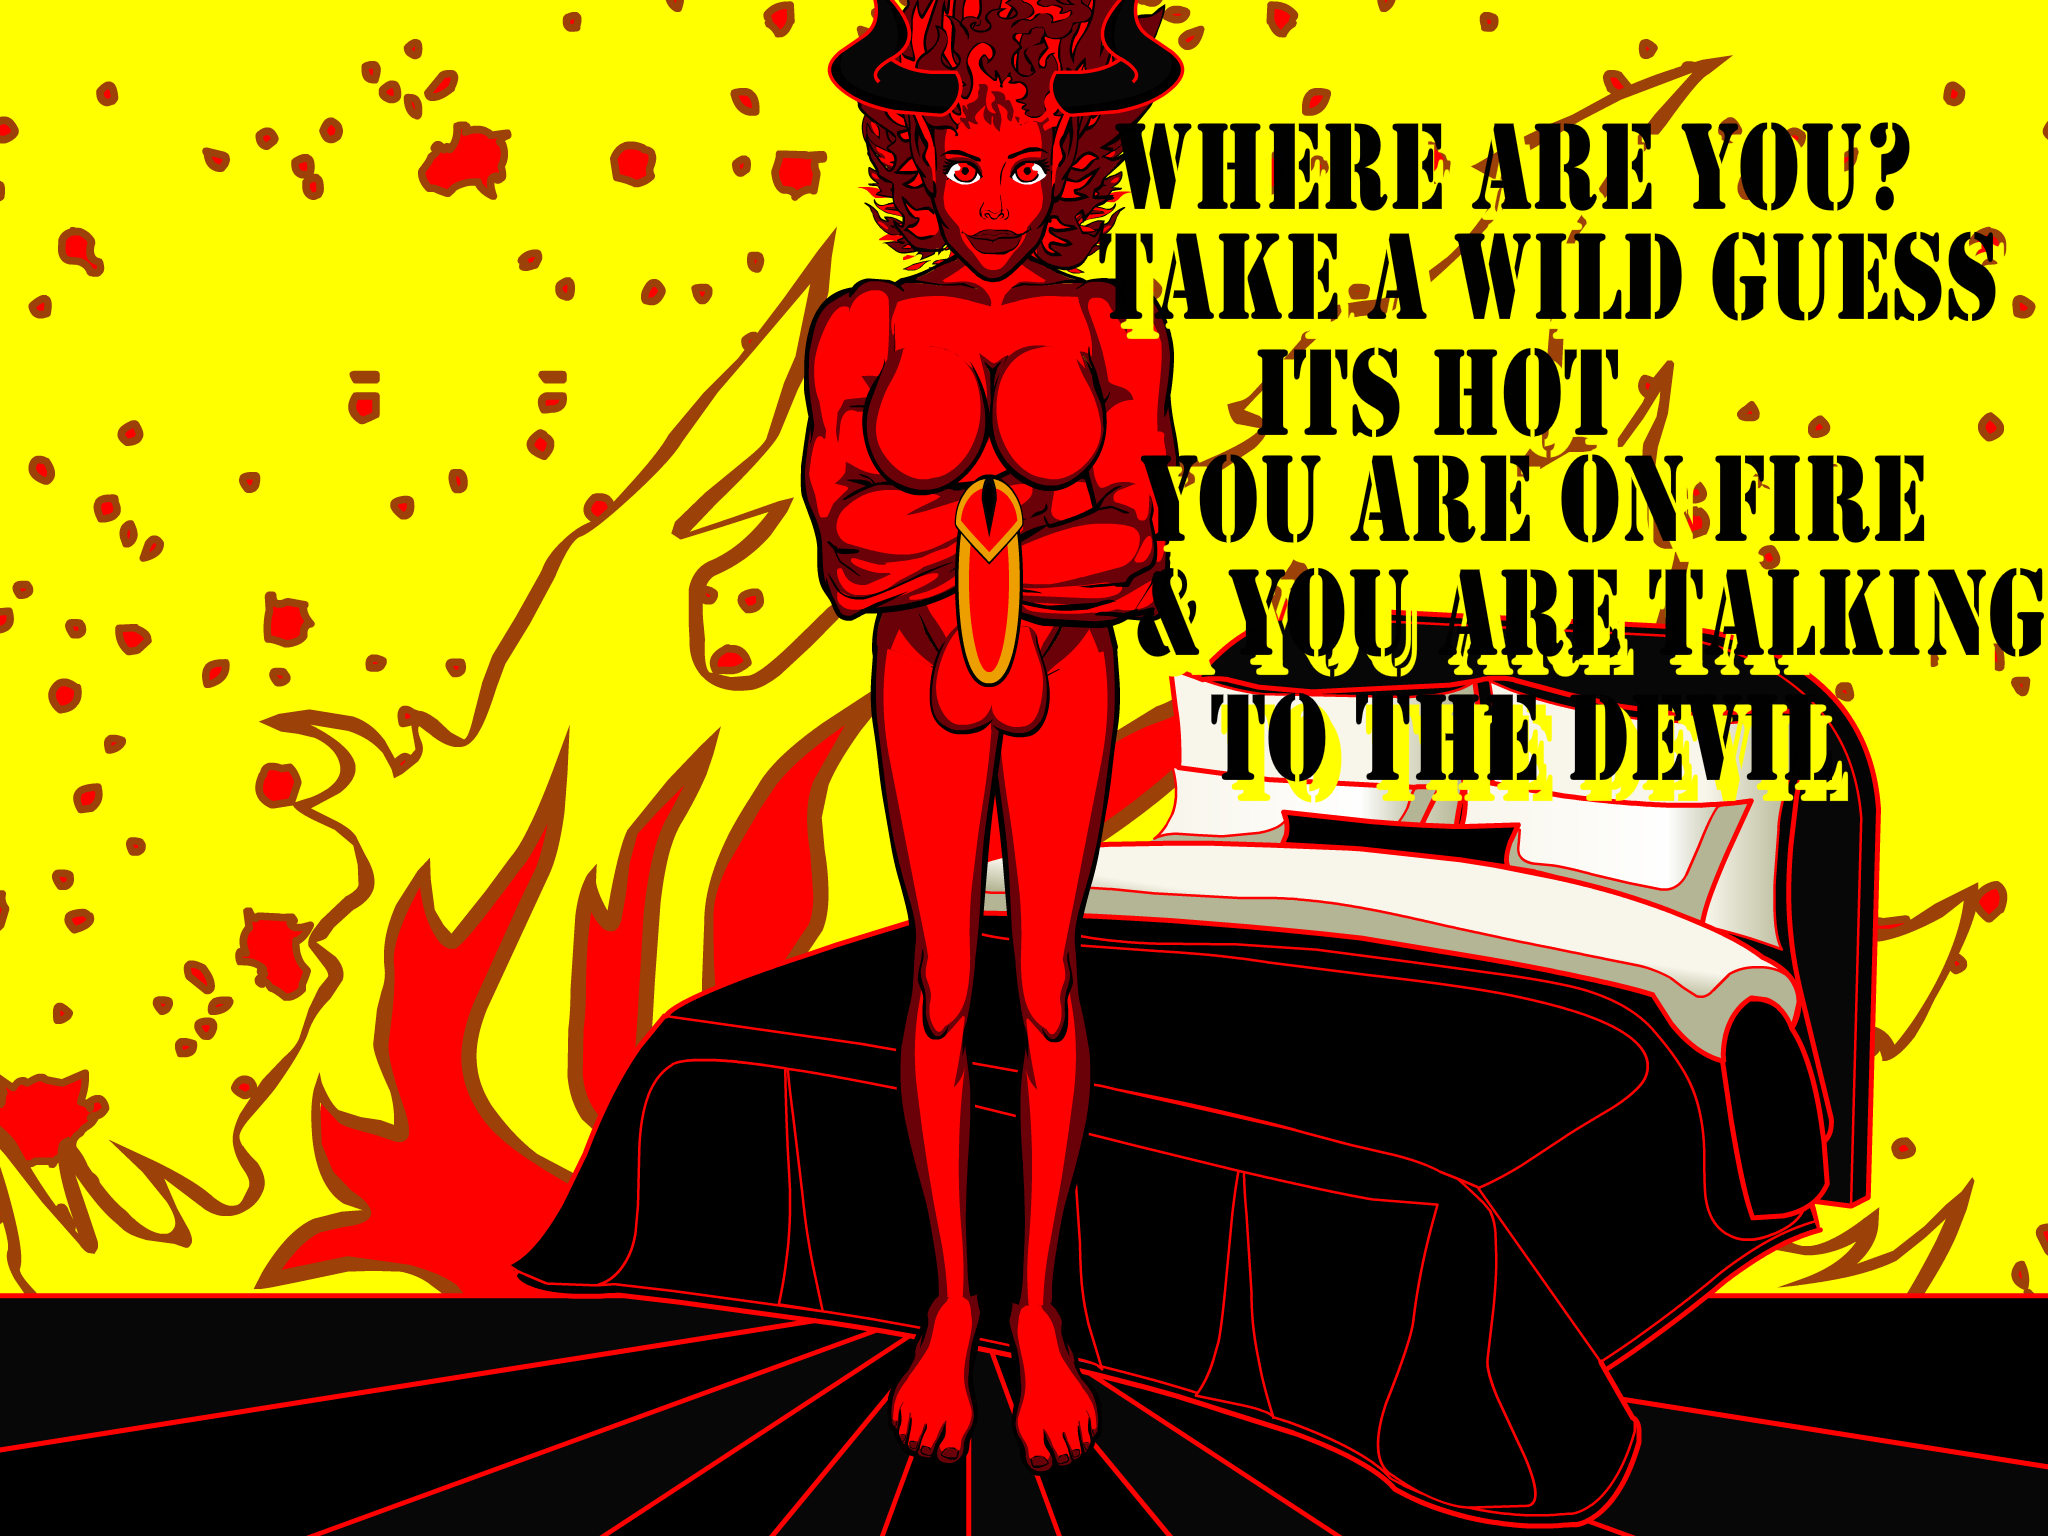 Wescome to hell